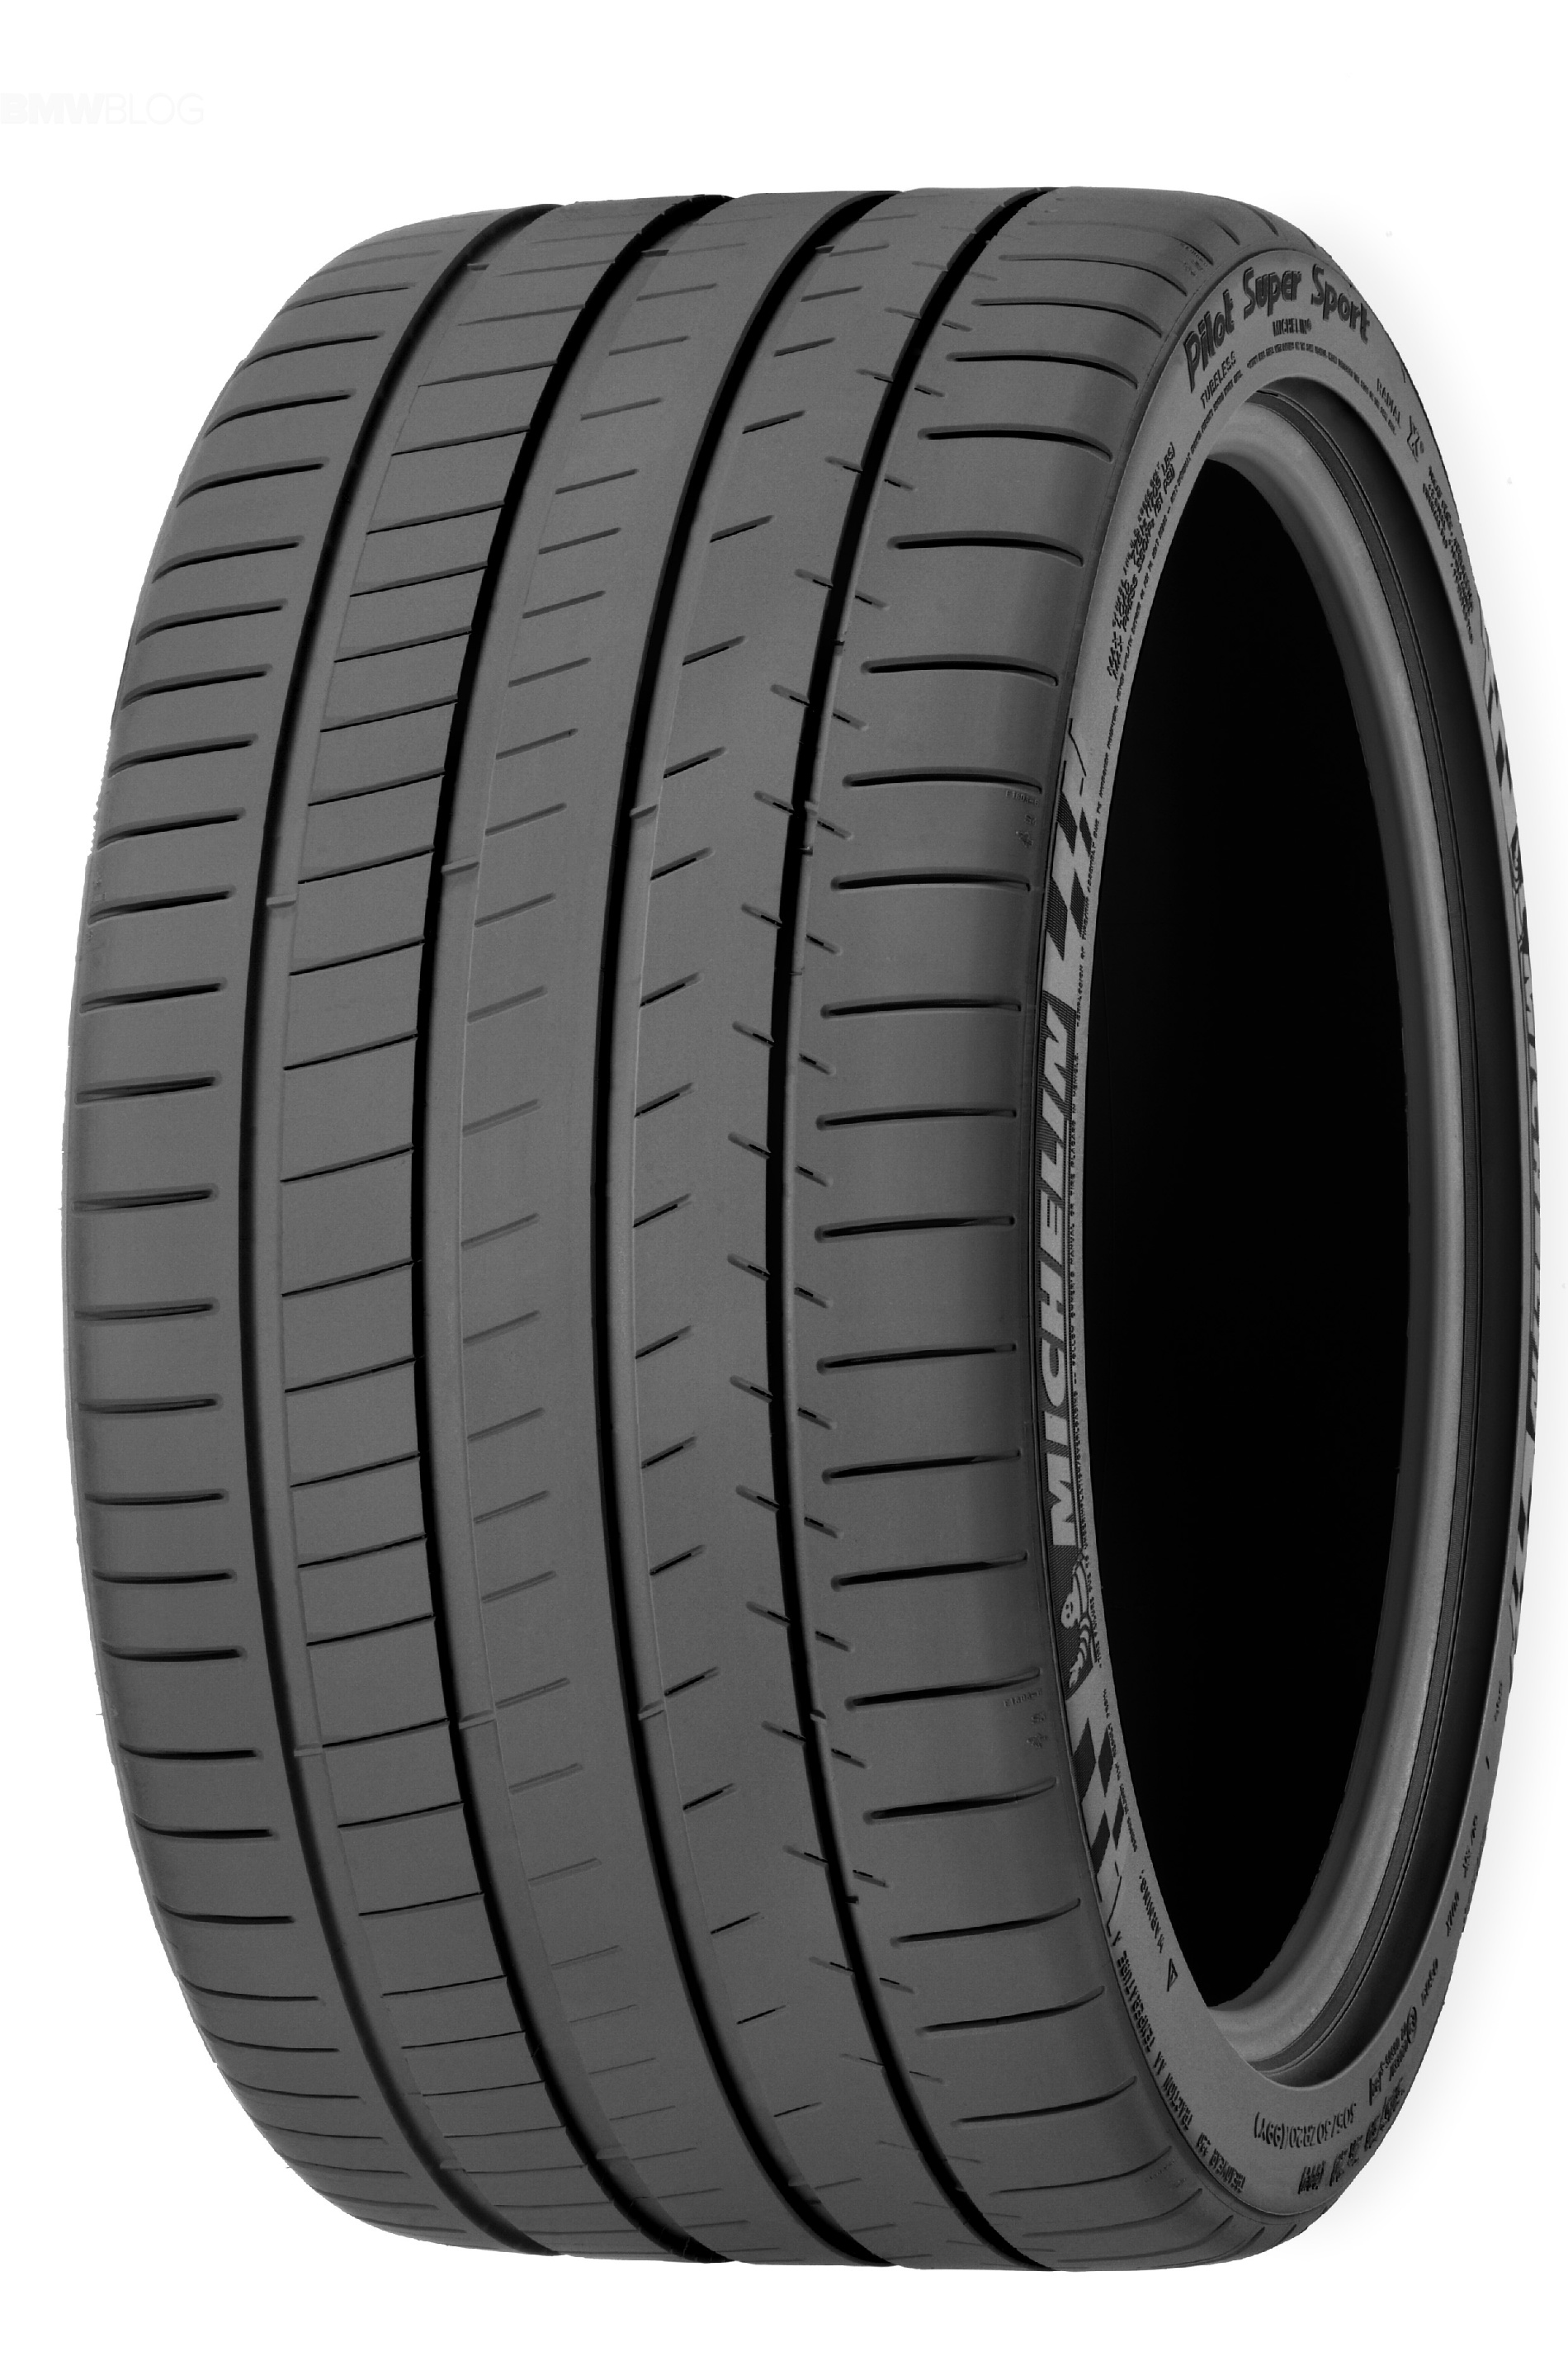 Летняя шина Michelin Pilot Super Sport 255/40 R20 101Y N0